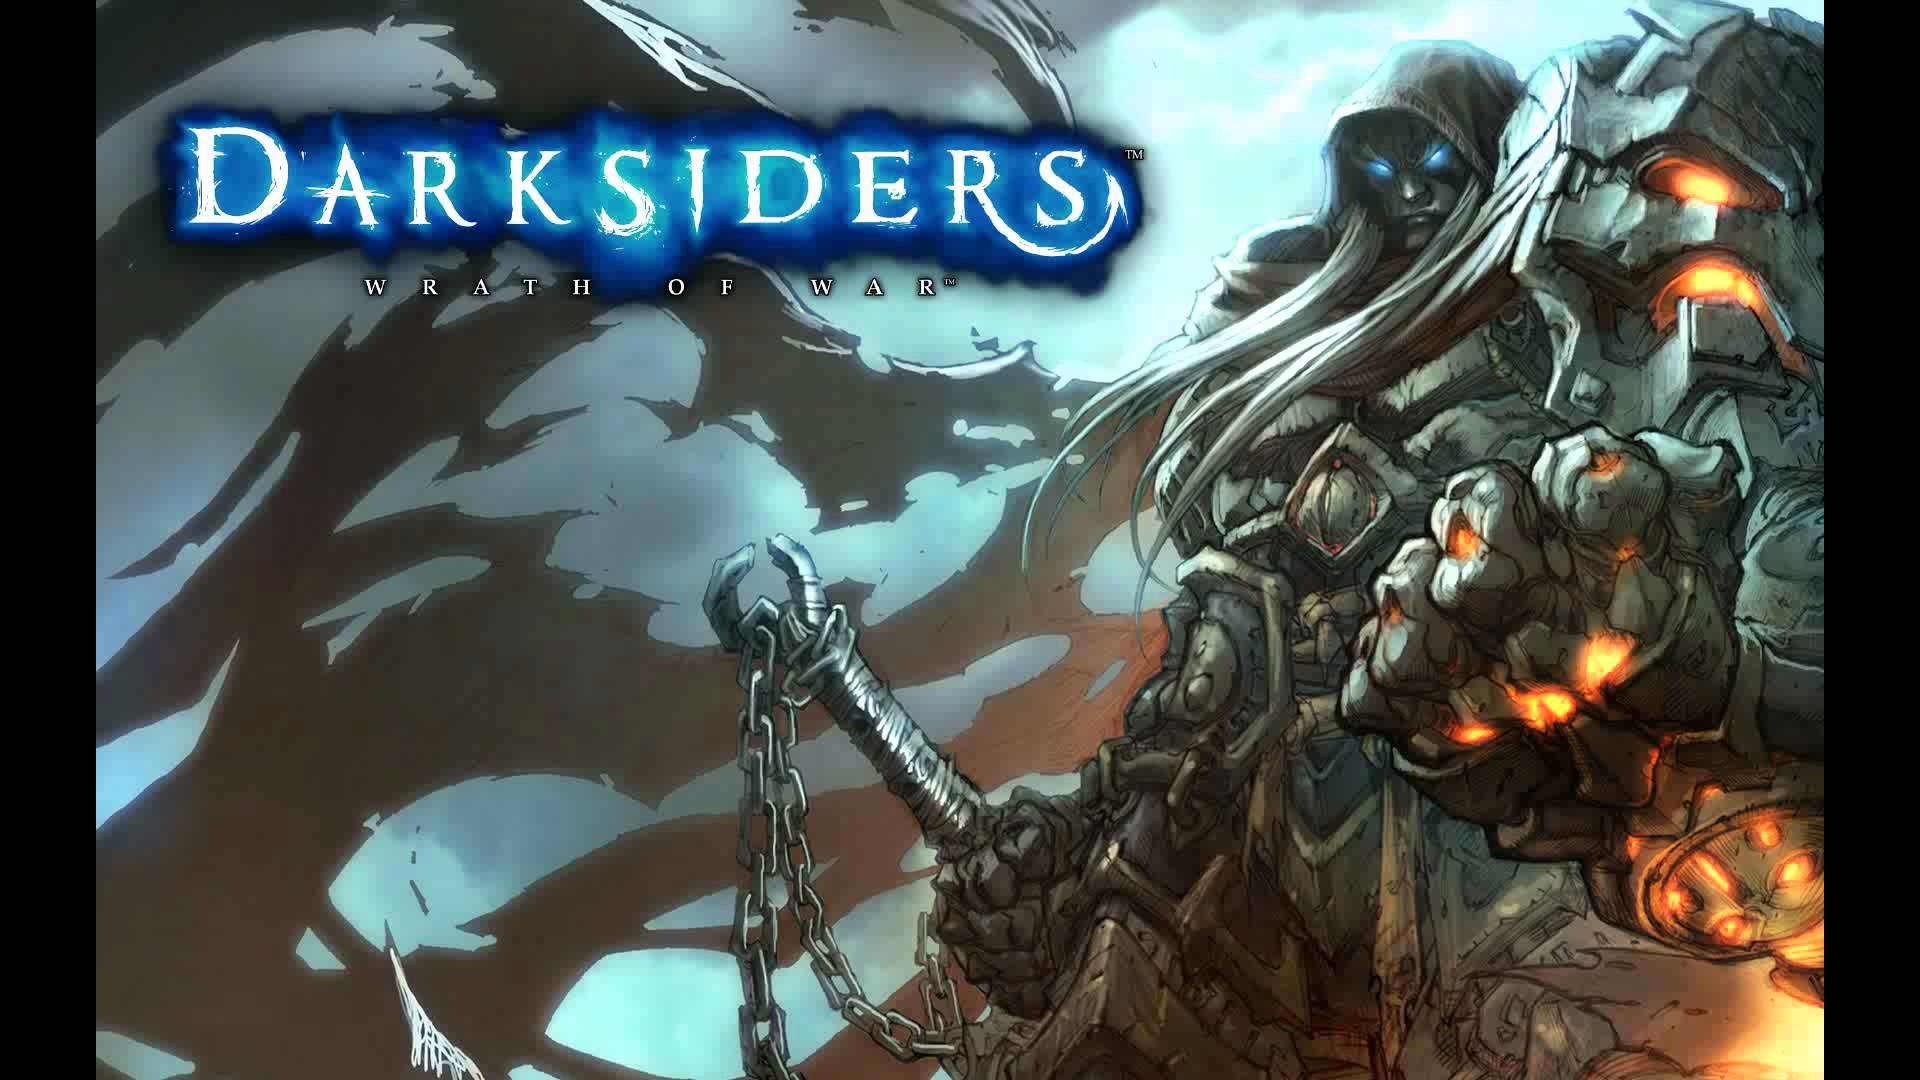 Darksiders Background (85+ pictures)